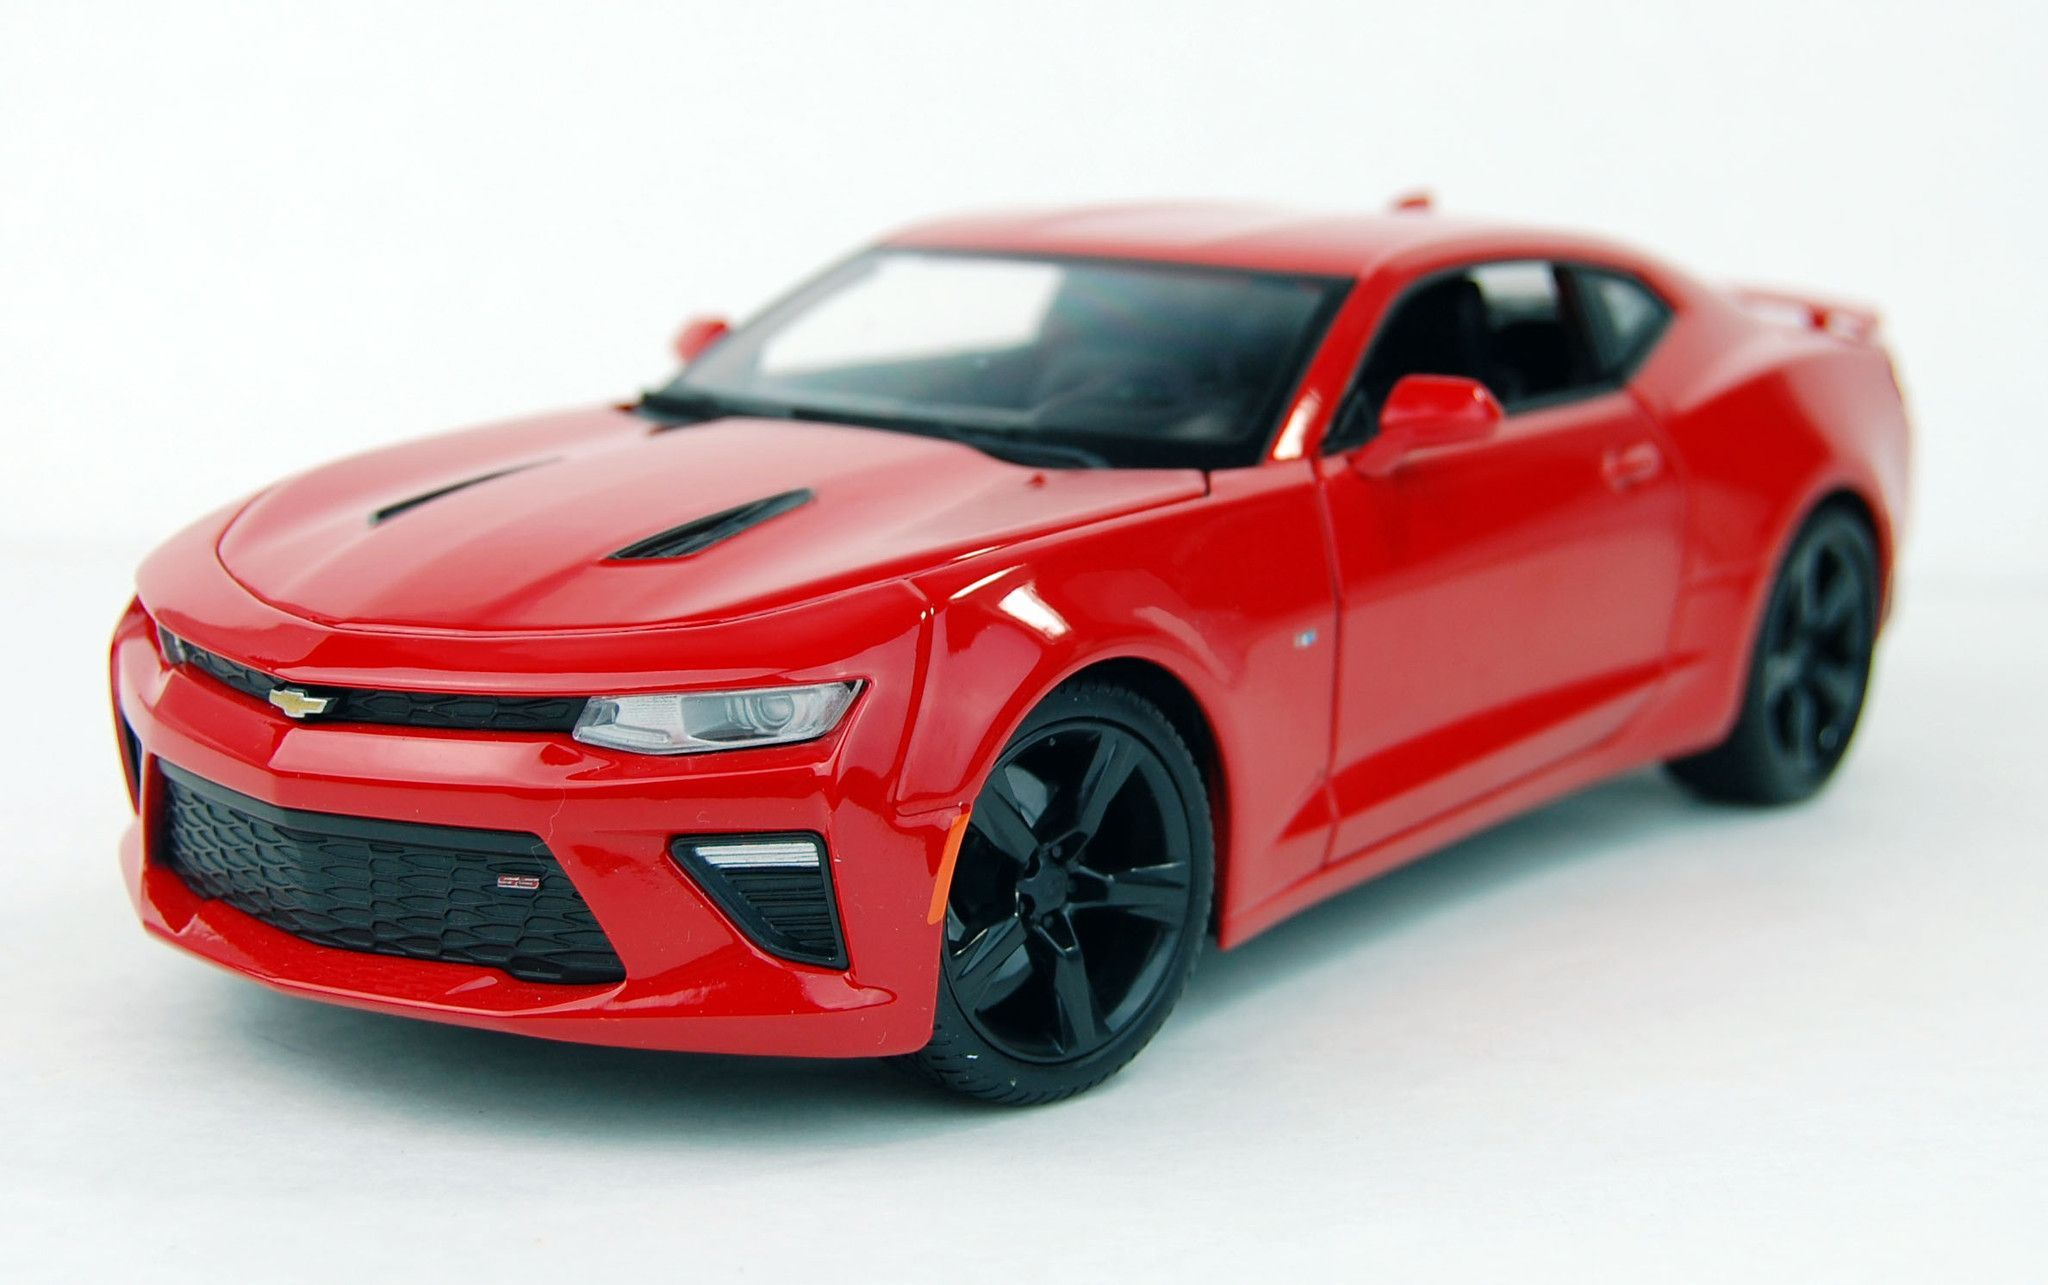 Charmant 2016 Chevrolet Camaro SS Diecast Model Car Red Maisto 31689 1/18